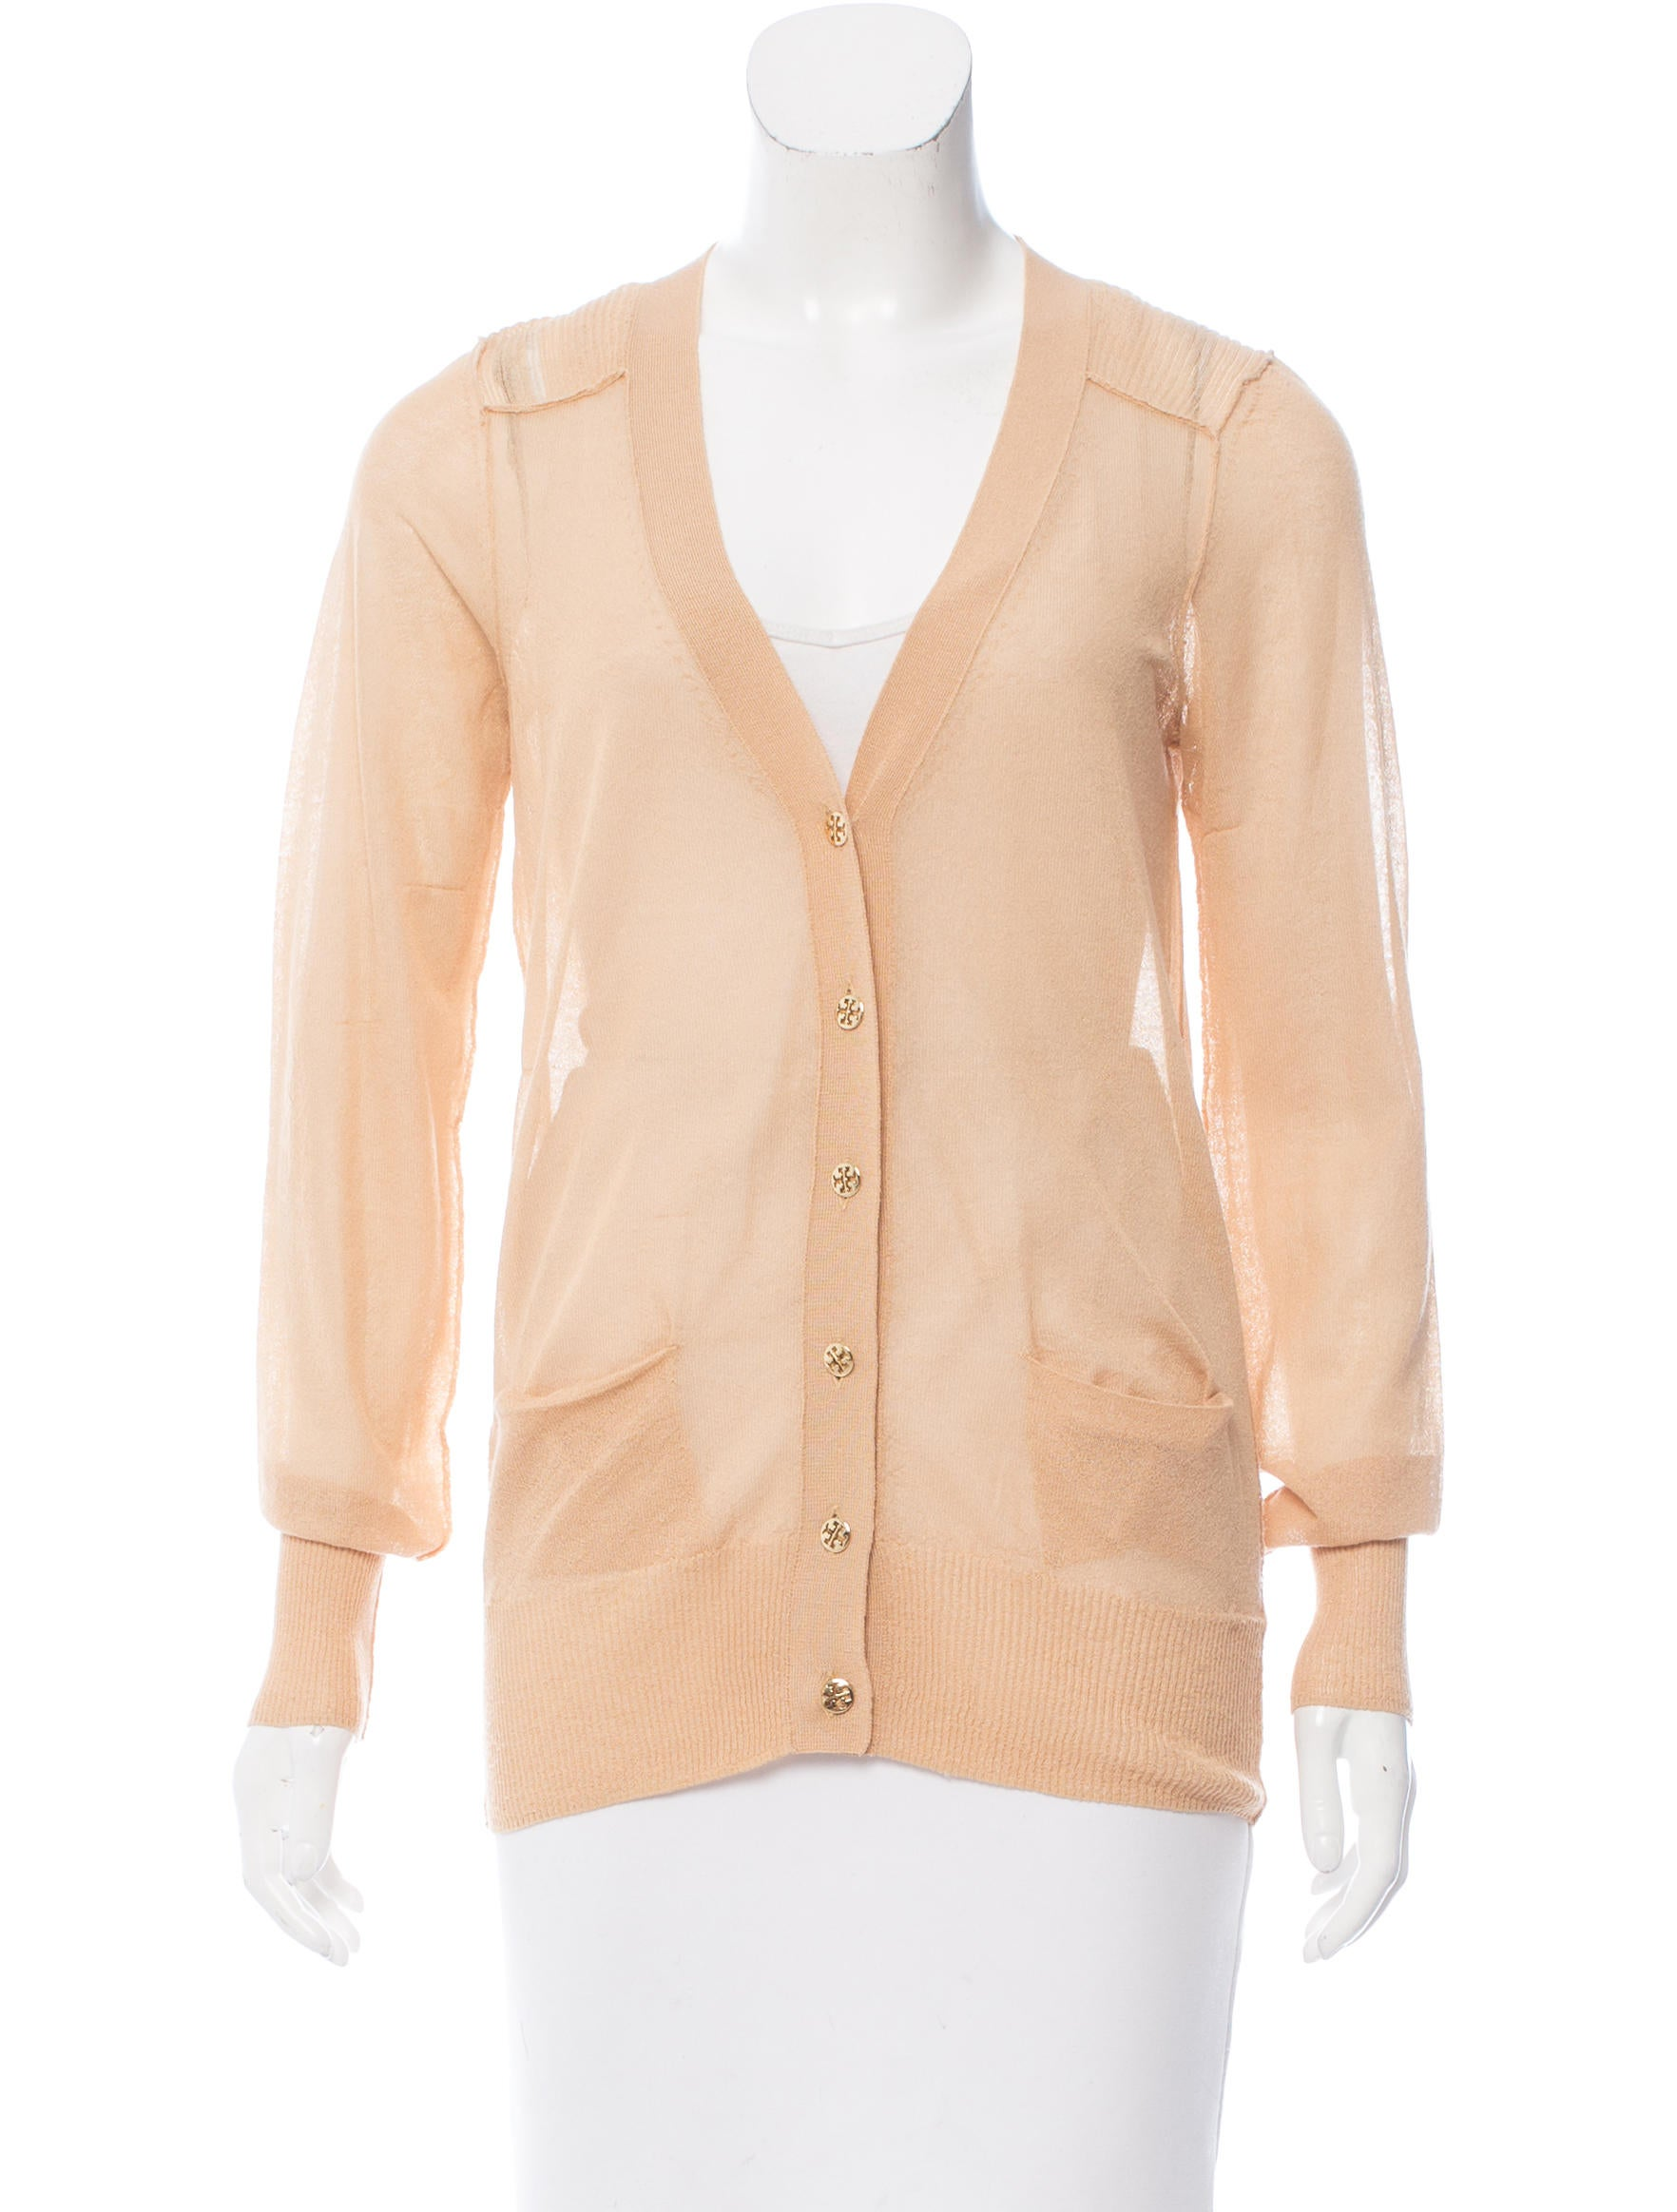 Tory Burch Sheer Long Sleeve Cardigan - Clothing - WTO96950 | The ...